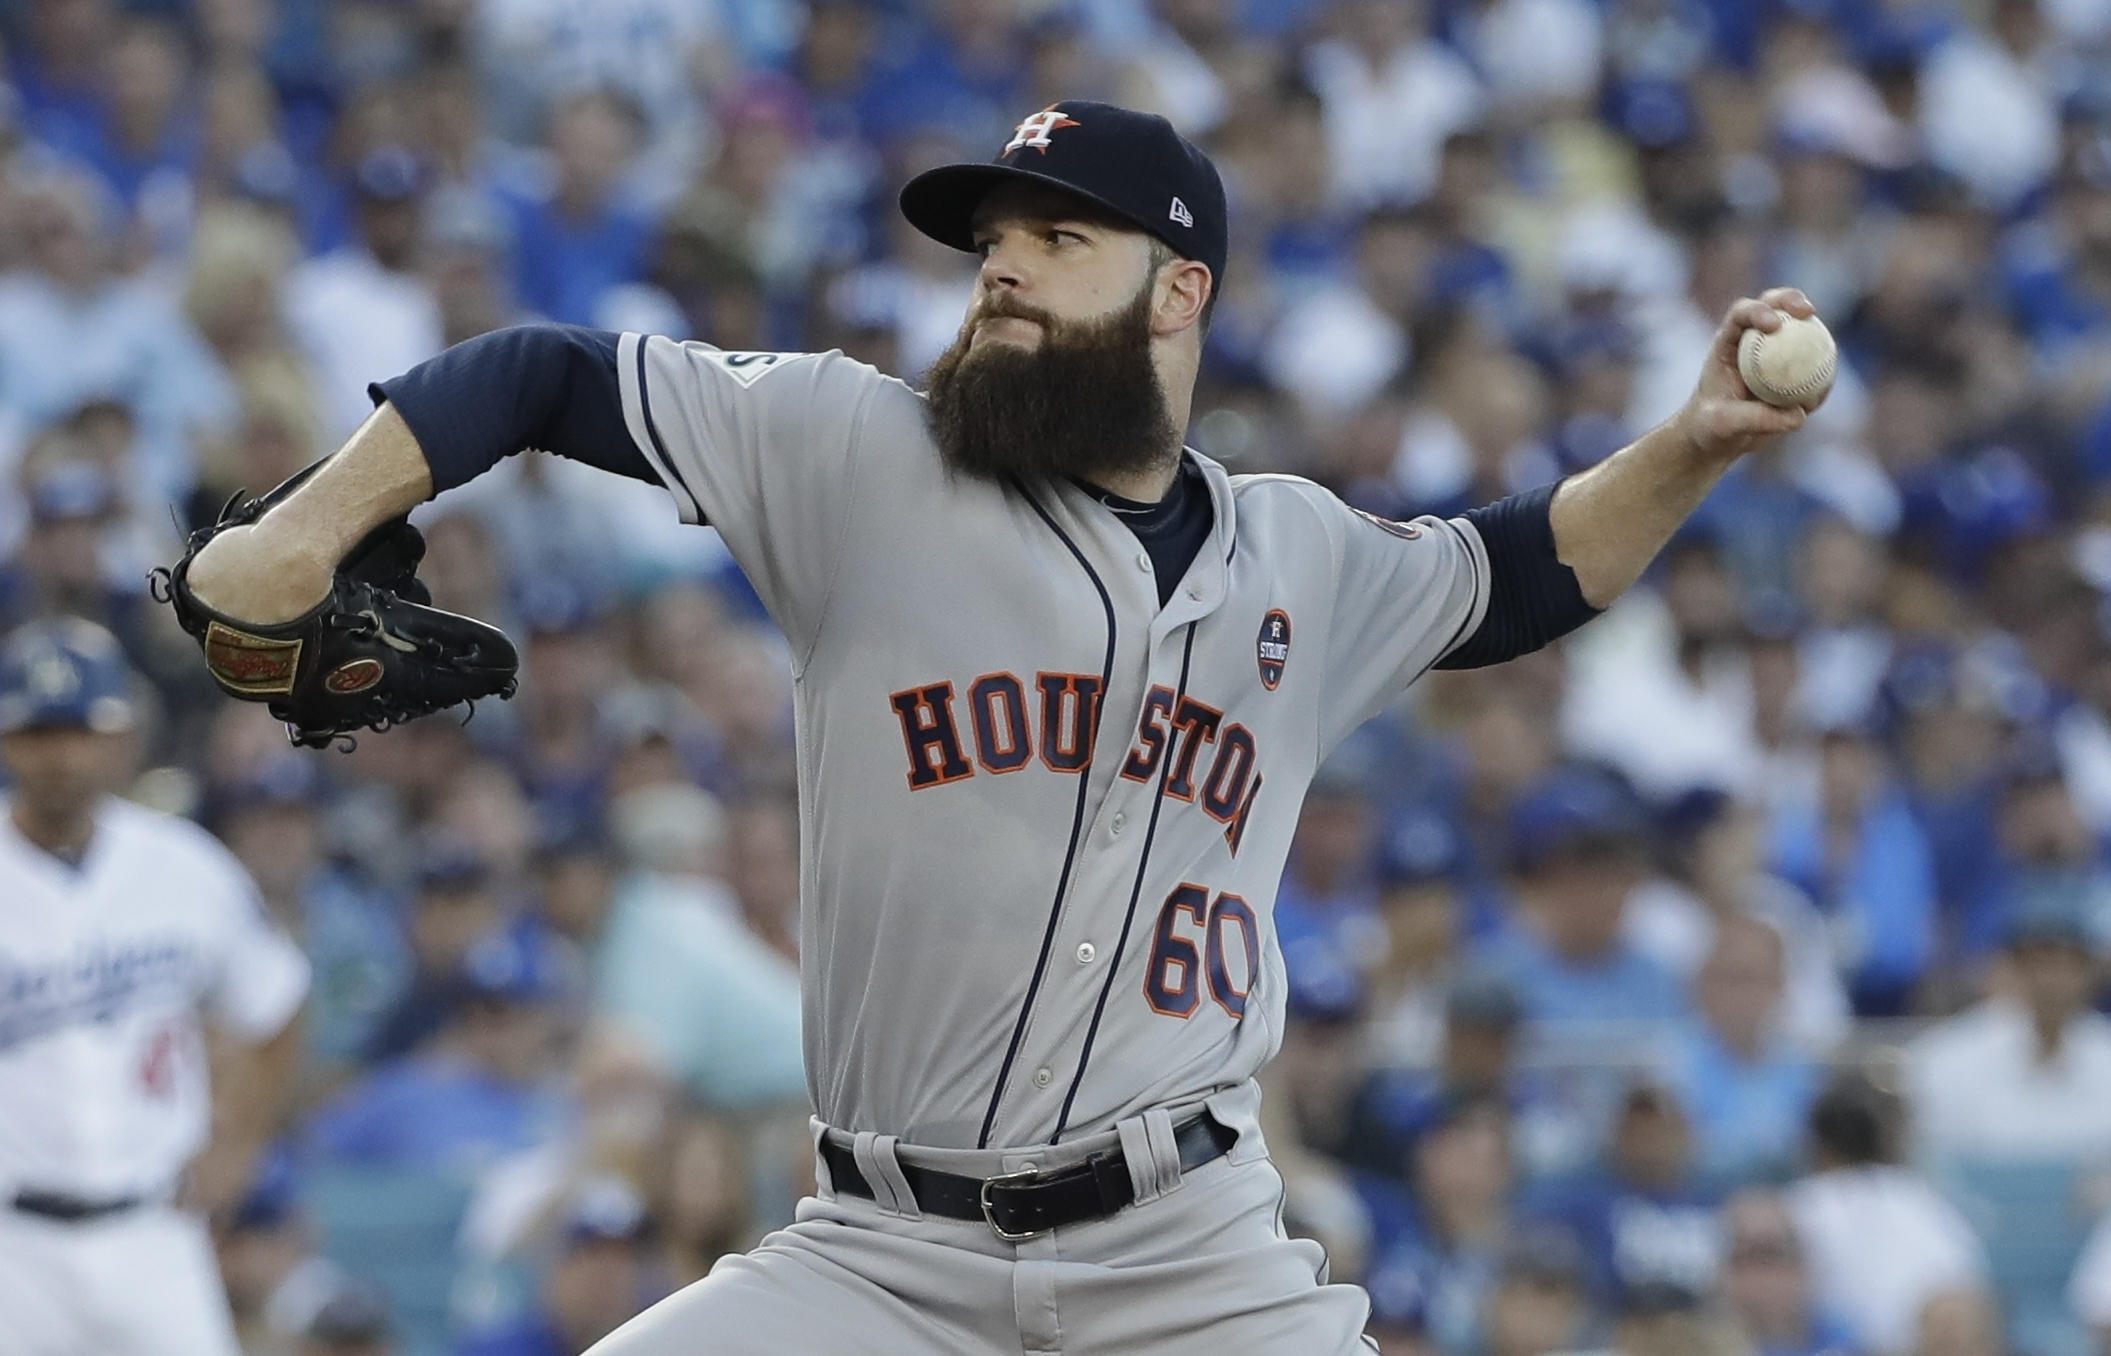 Houston Astros starting pitcher Dallas Keuchel throws during the first inning of Game 1 of baseball's World Series against the Los Angeles Dodgers Tuesday, Oct. 24, 2017, in Los Angeles. (AP Photo/David J. Phillip)